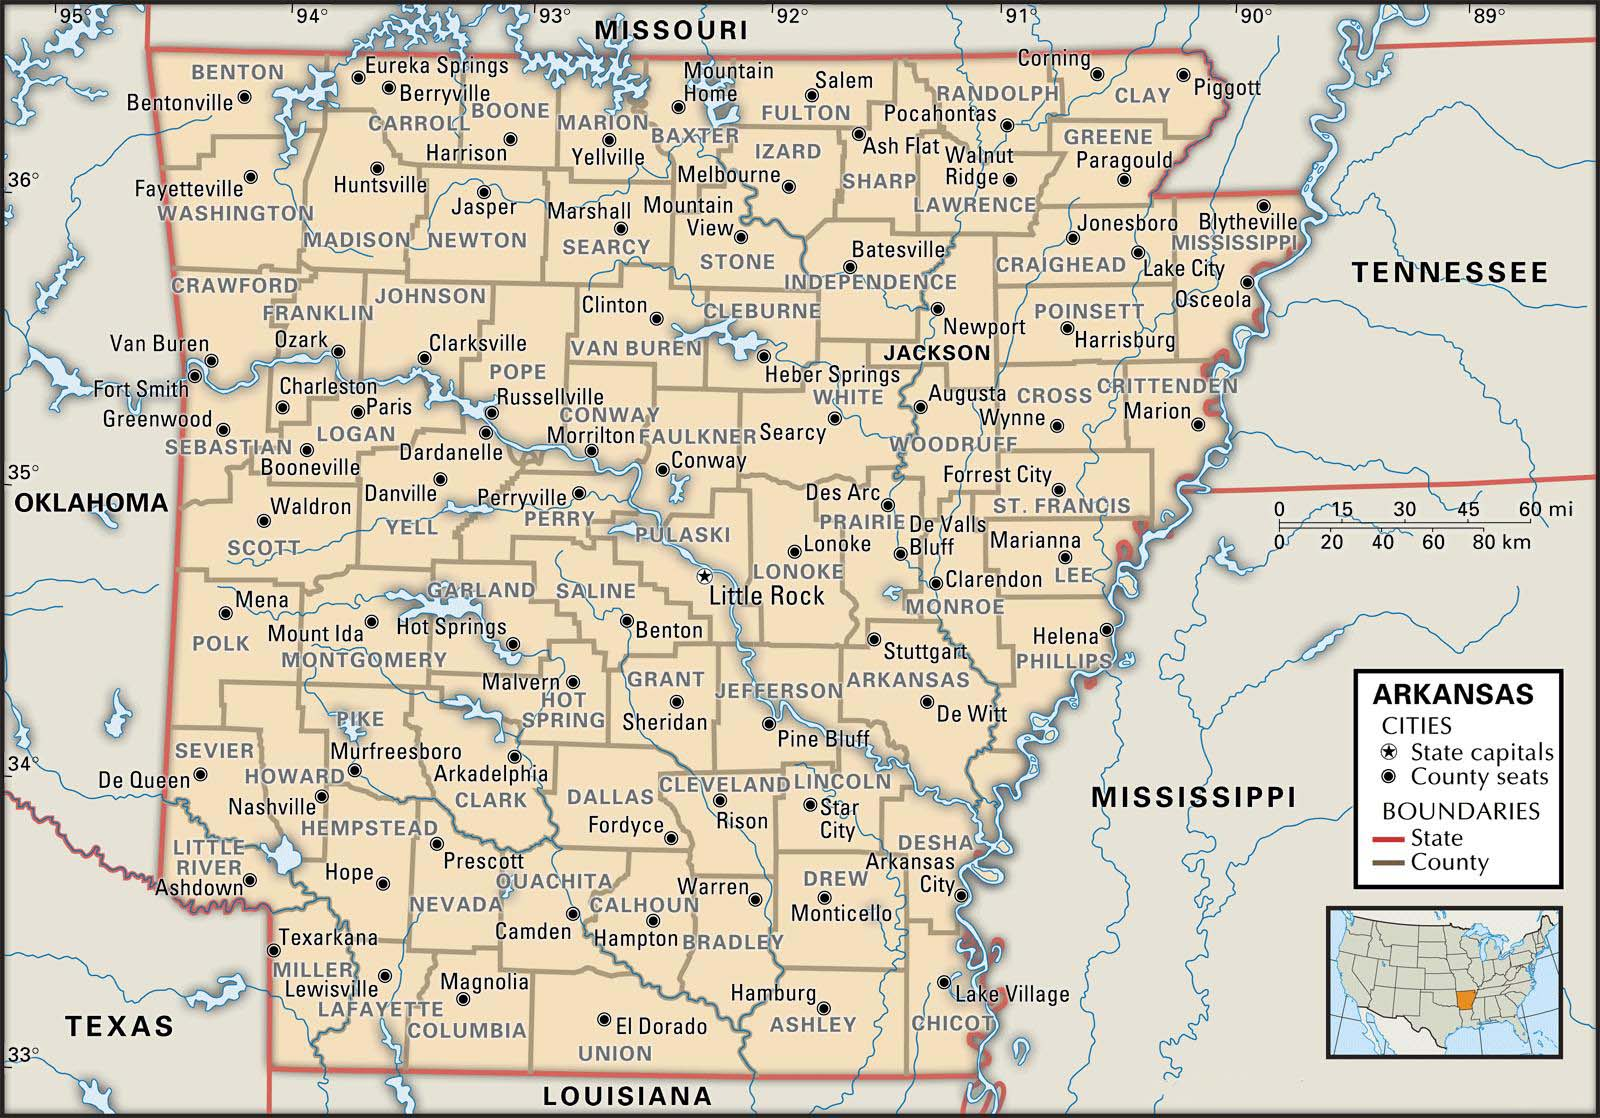 Map Of Arkansas County Boundaries And County Seats